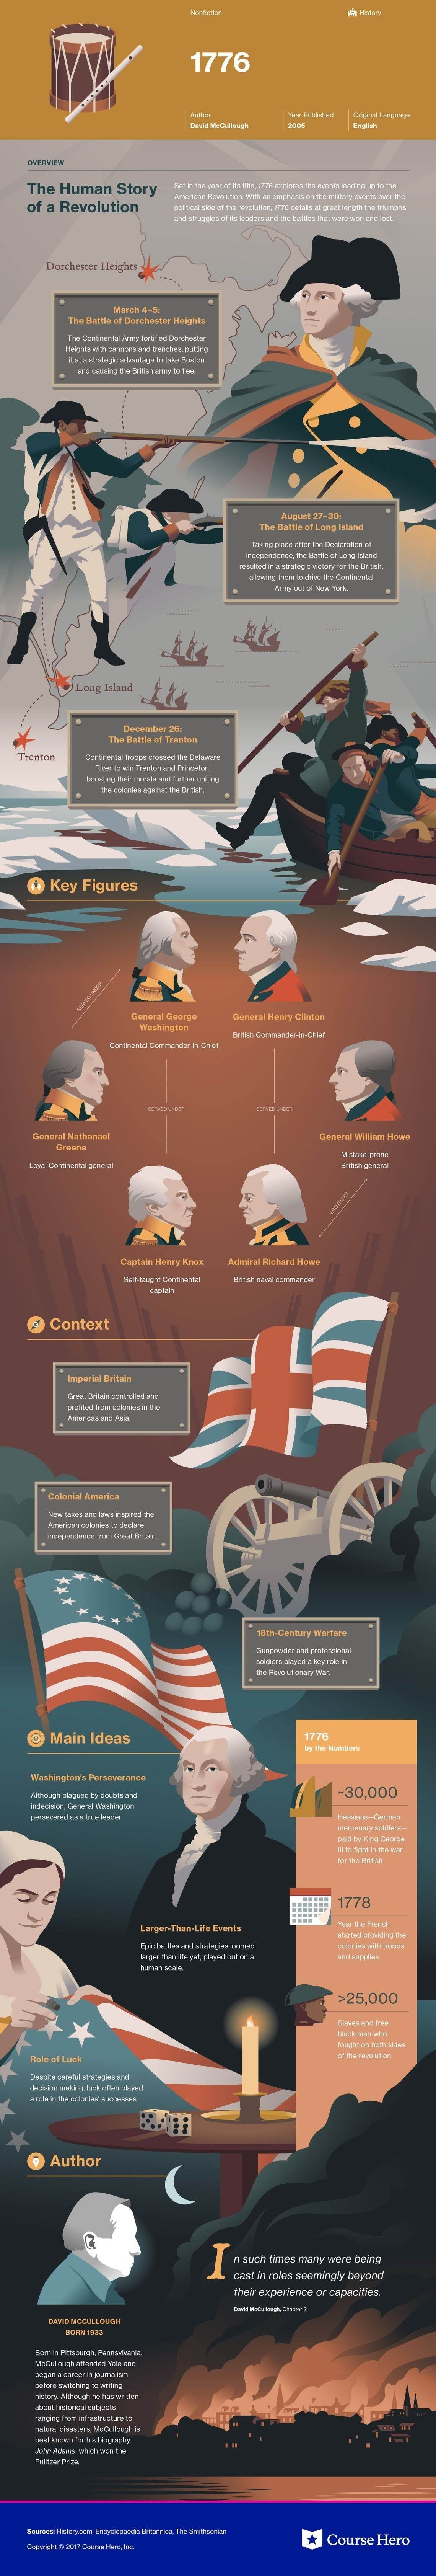 Literature Study Guides 1776 #infographic